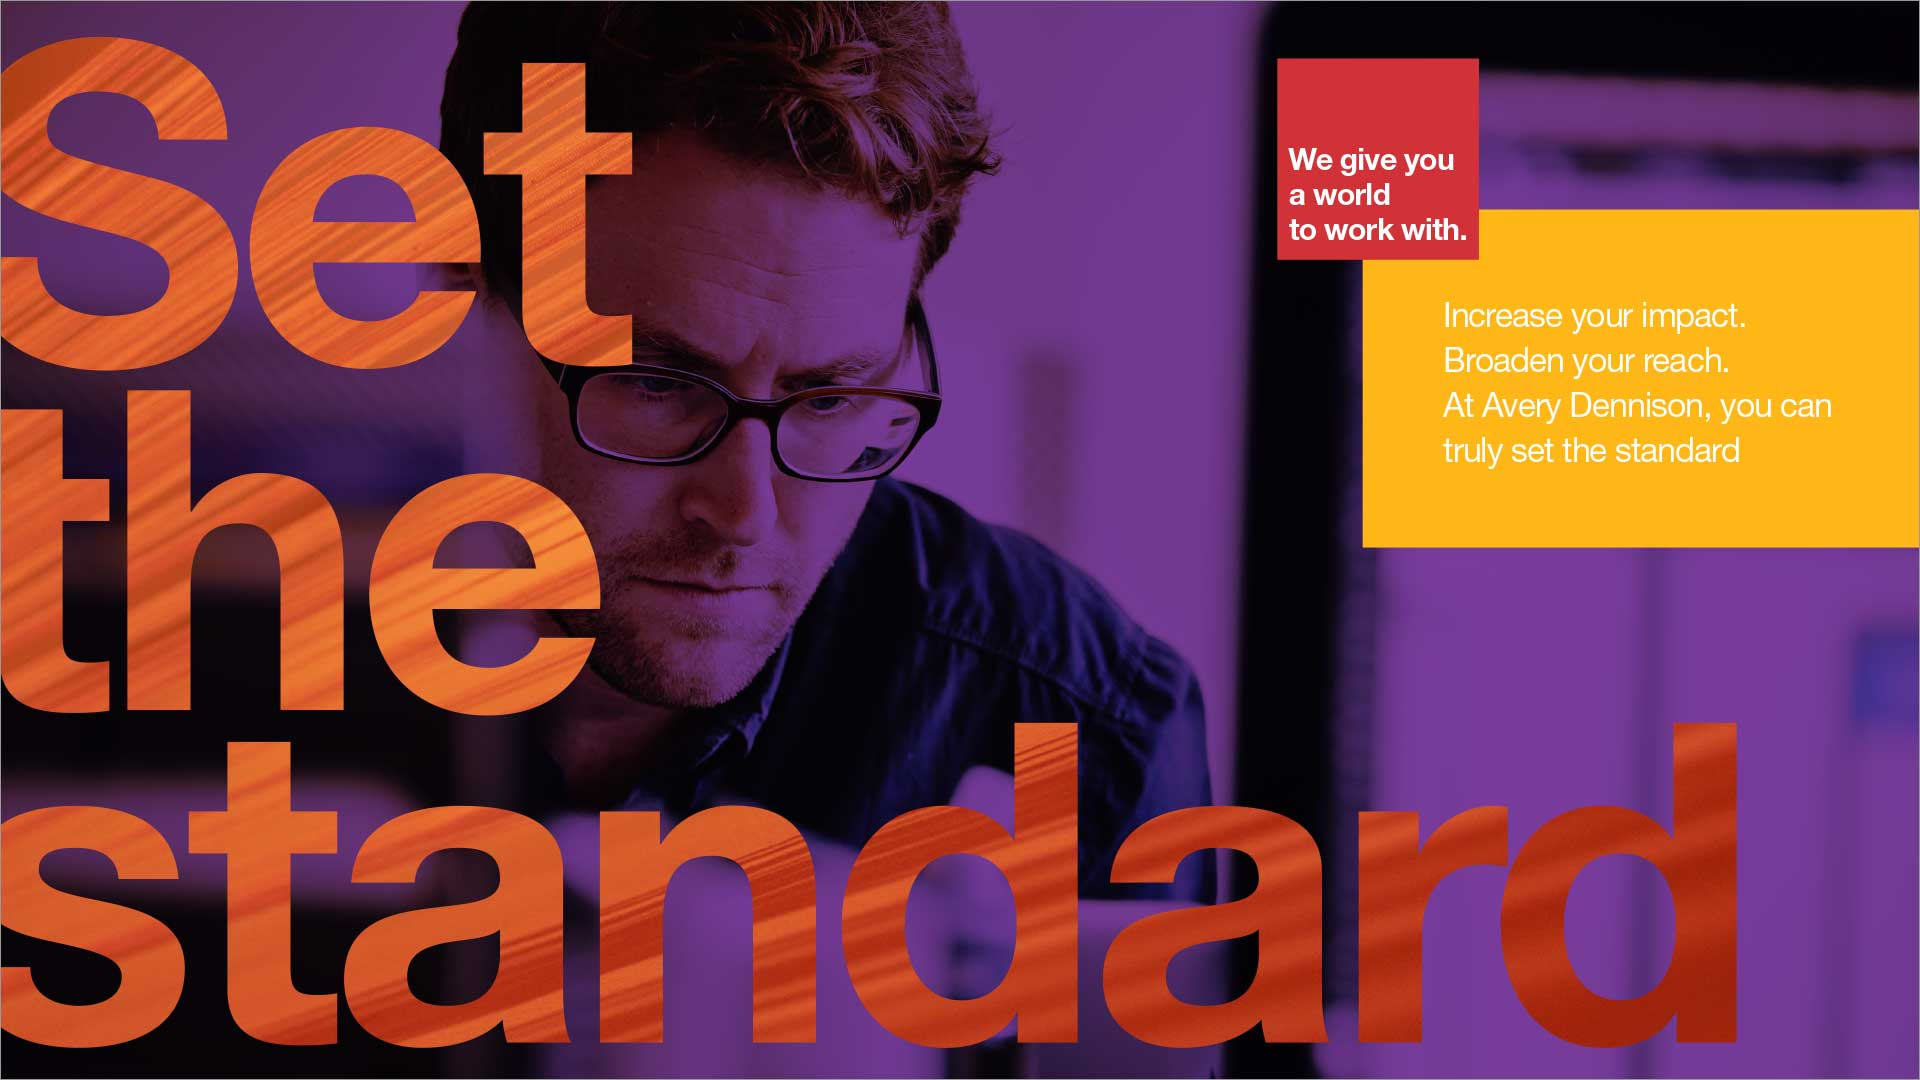 set the standard design concept. Avery Dennison employer brand, close up of man in glasses, big message, bold color